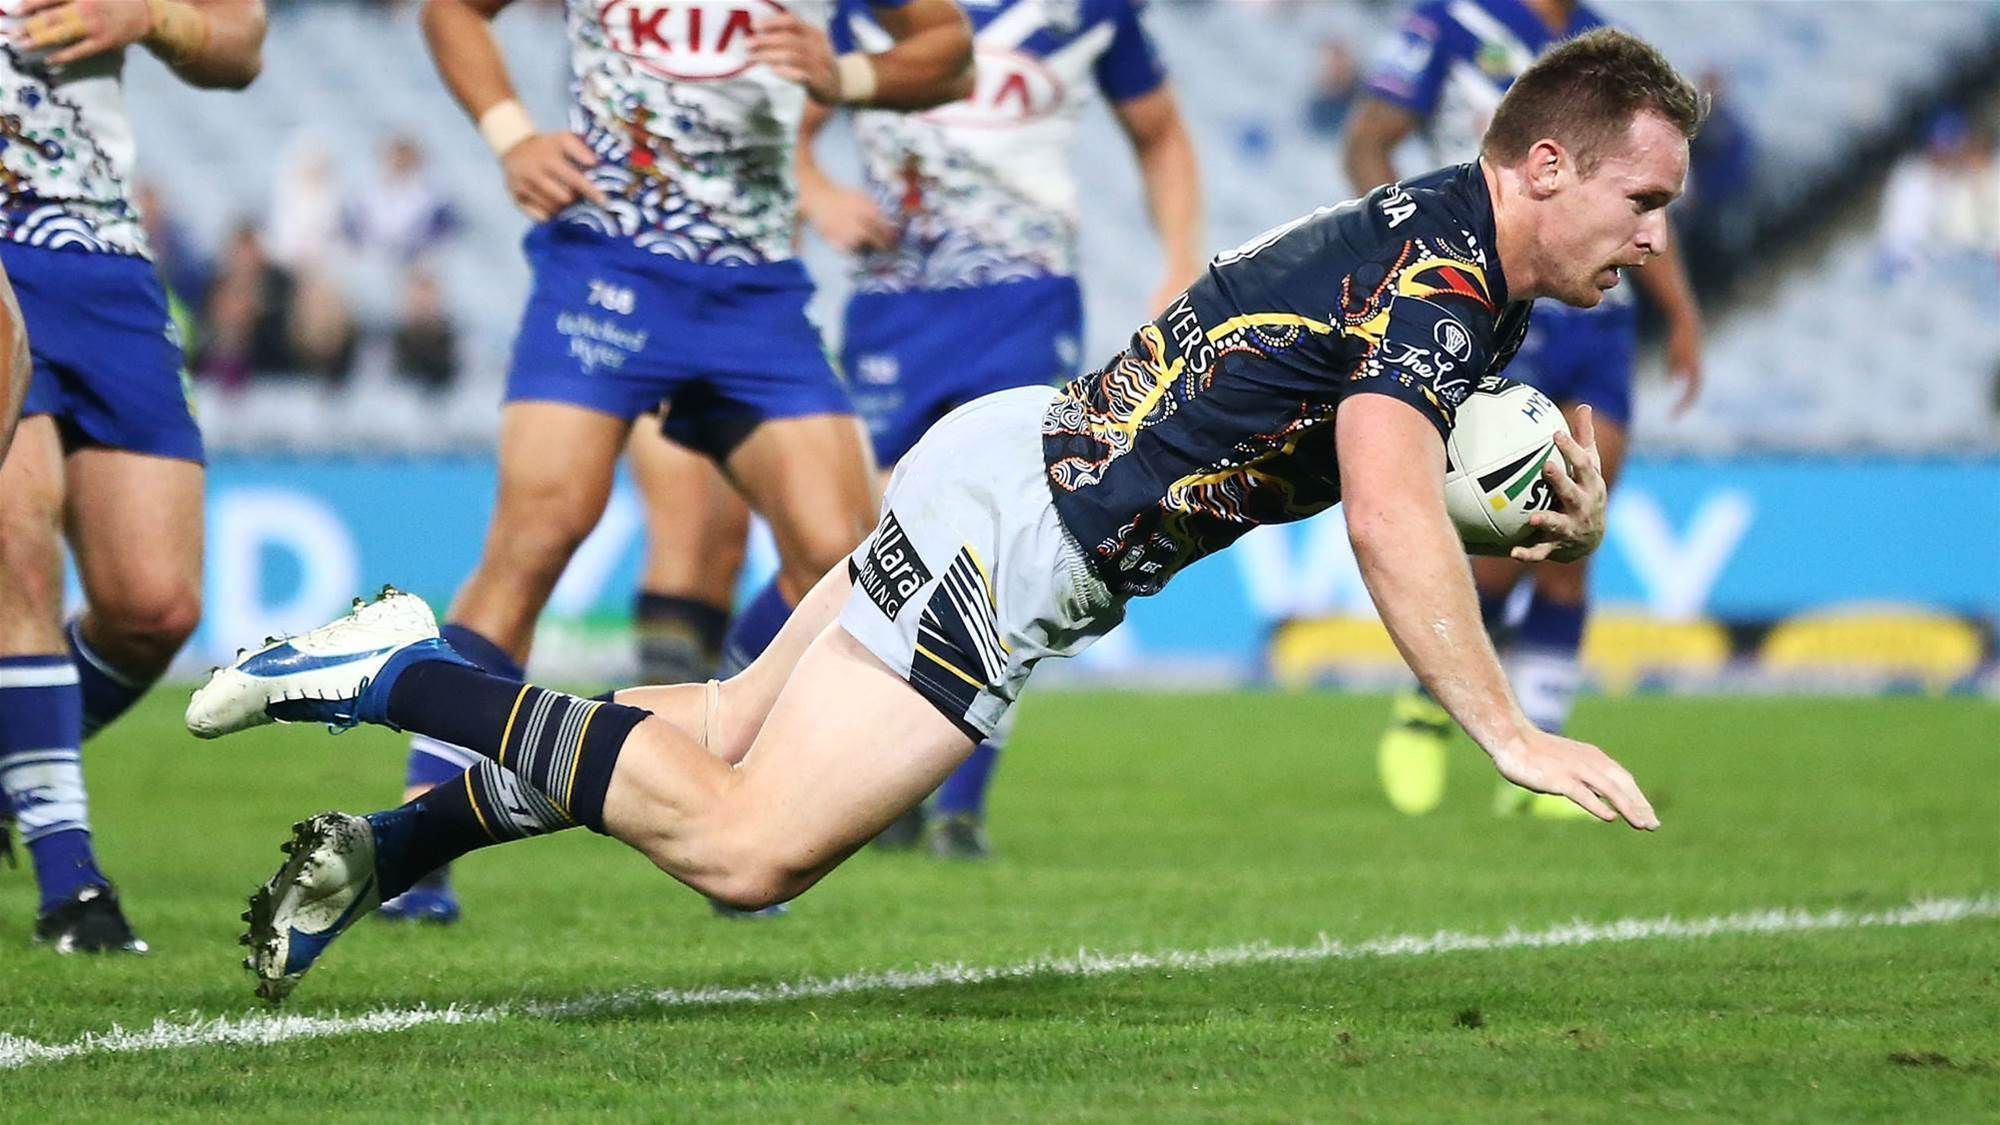 GALLERY: Bulldogs v Cowboys